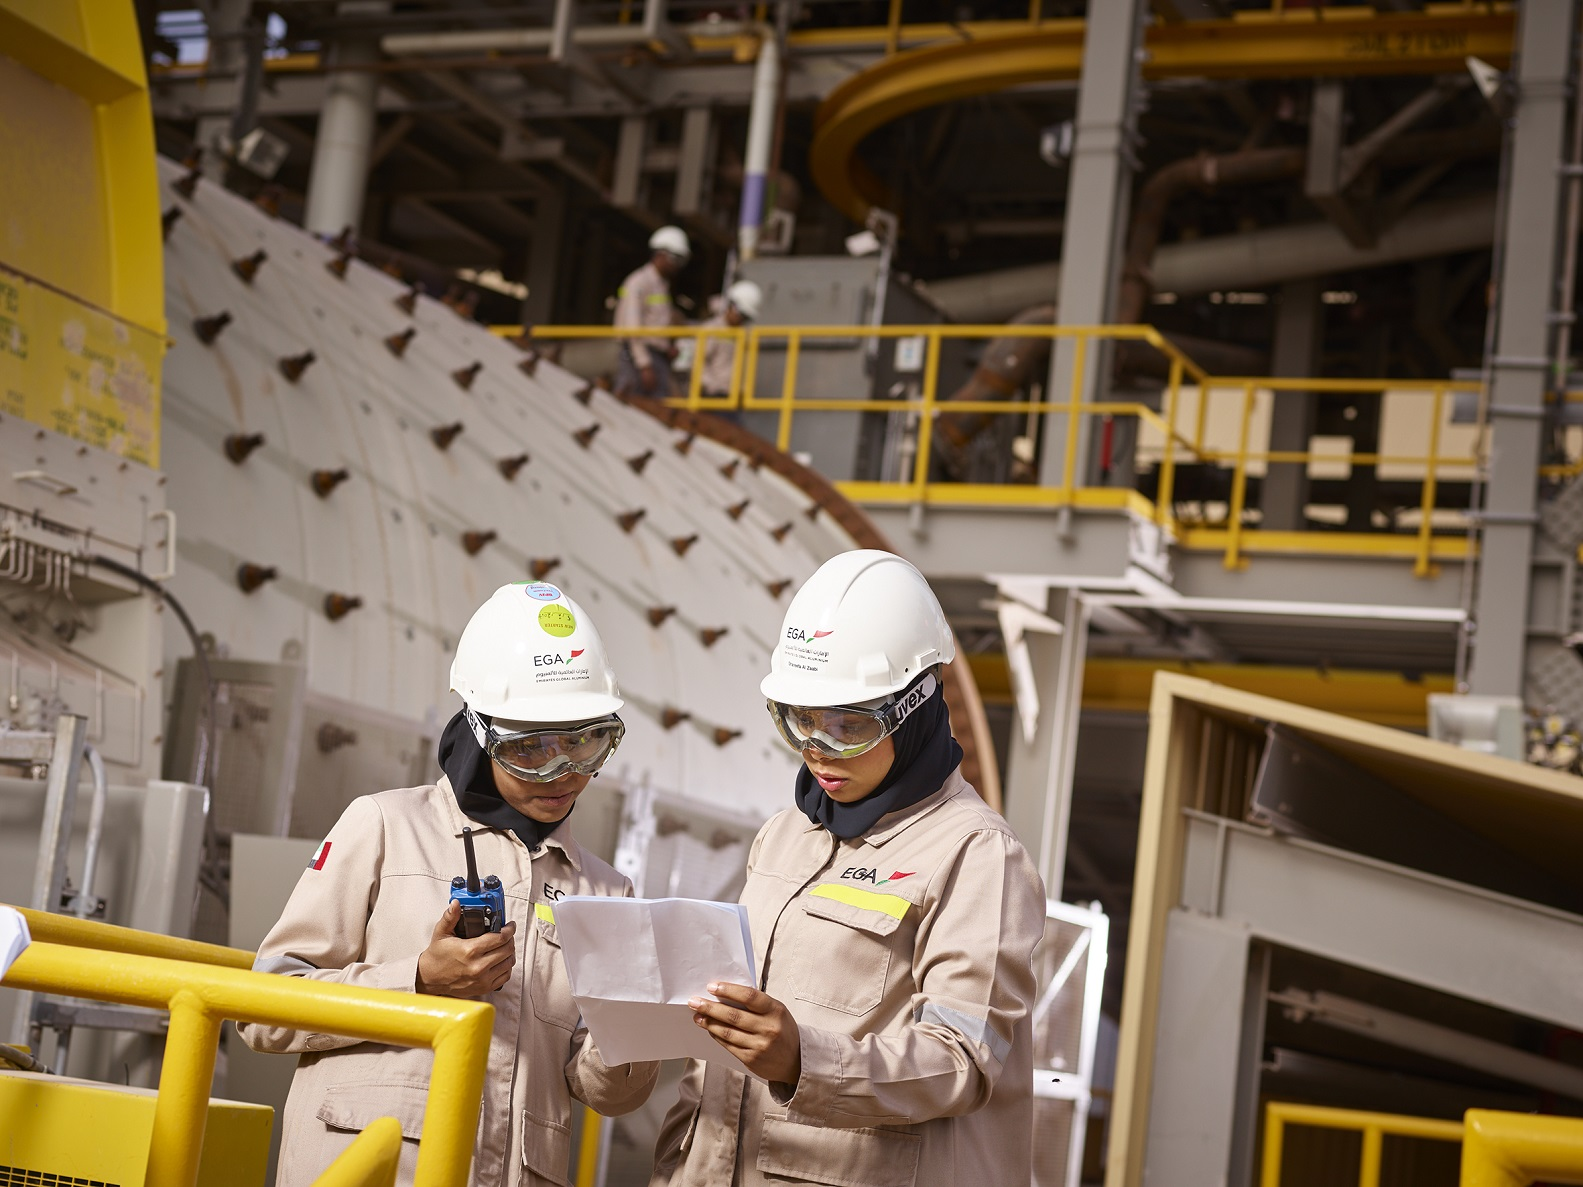 ega starts production at uae's first alumina refinery 2